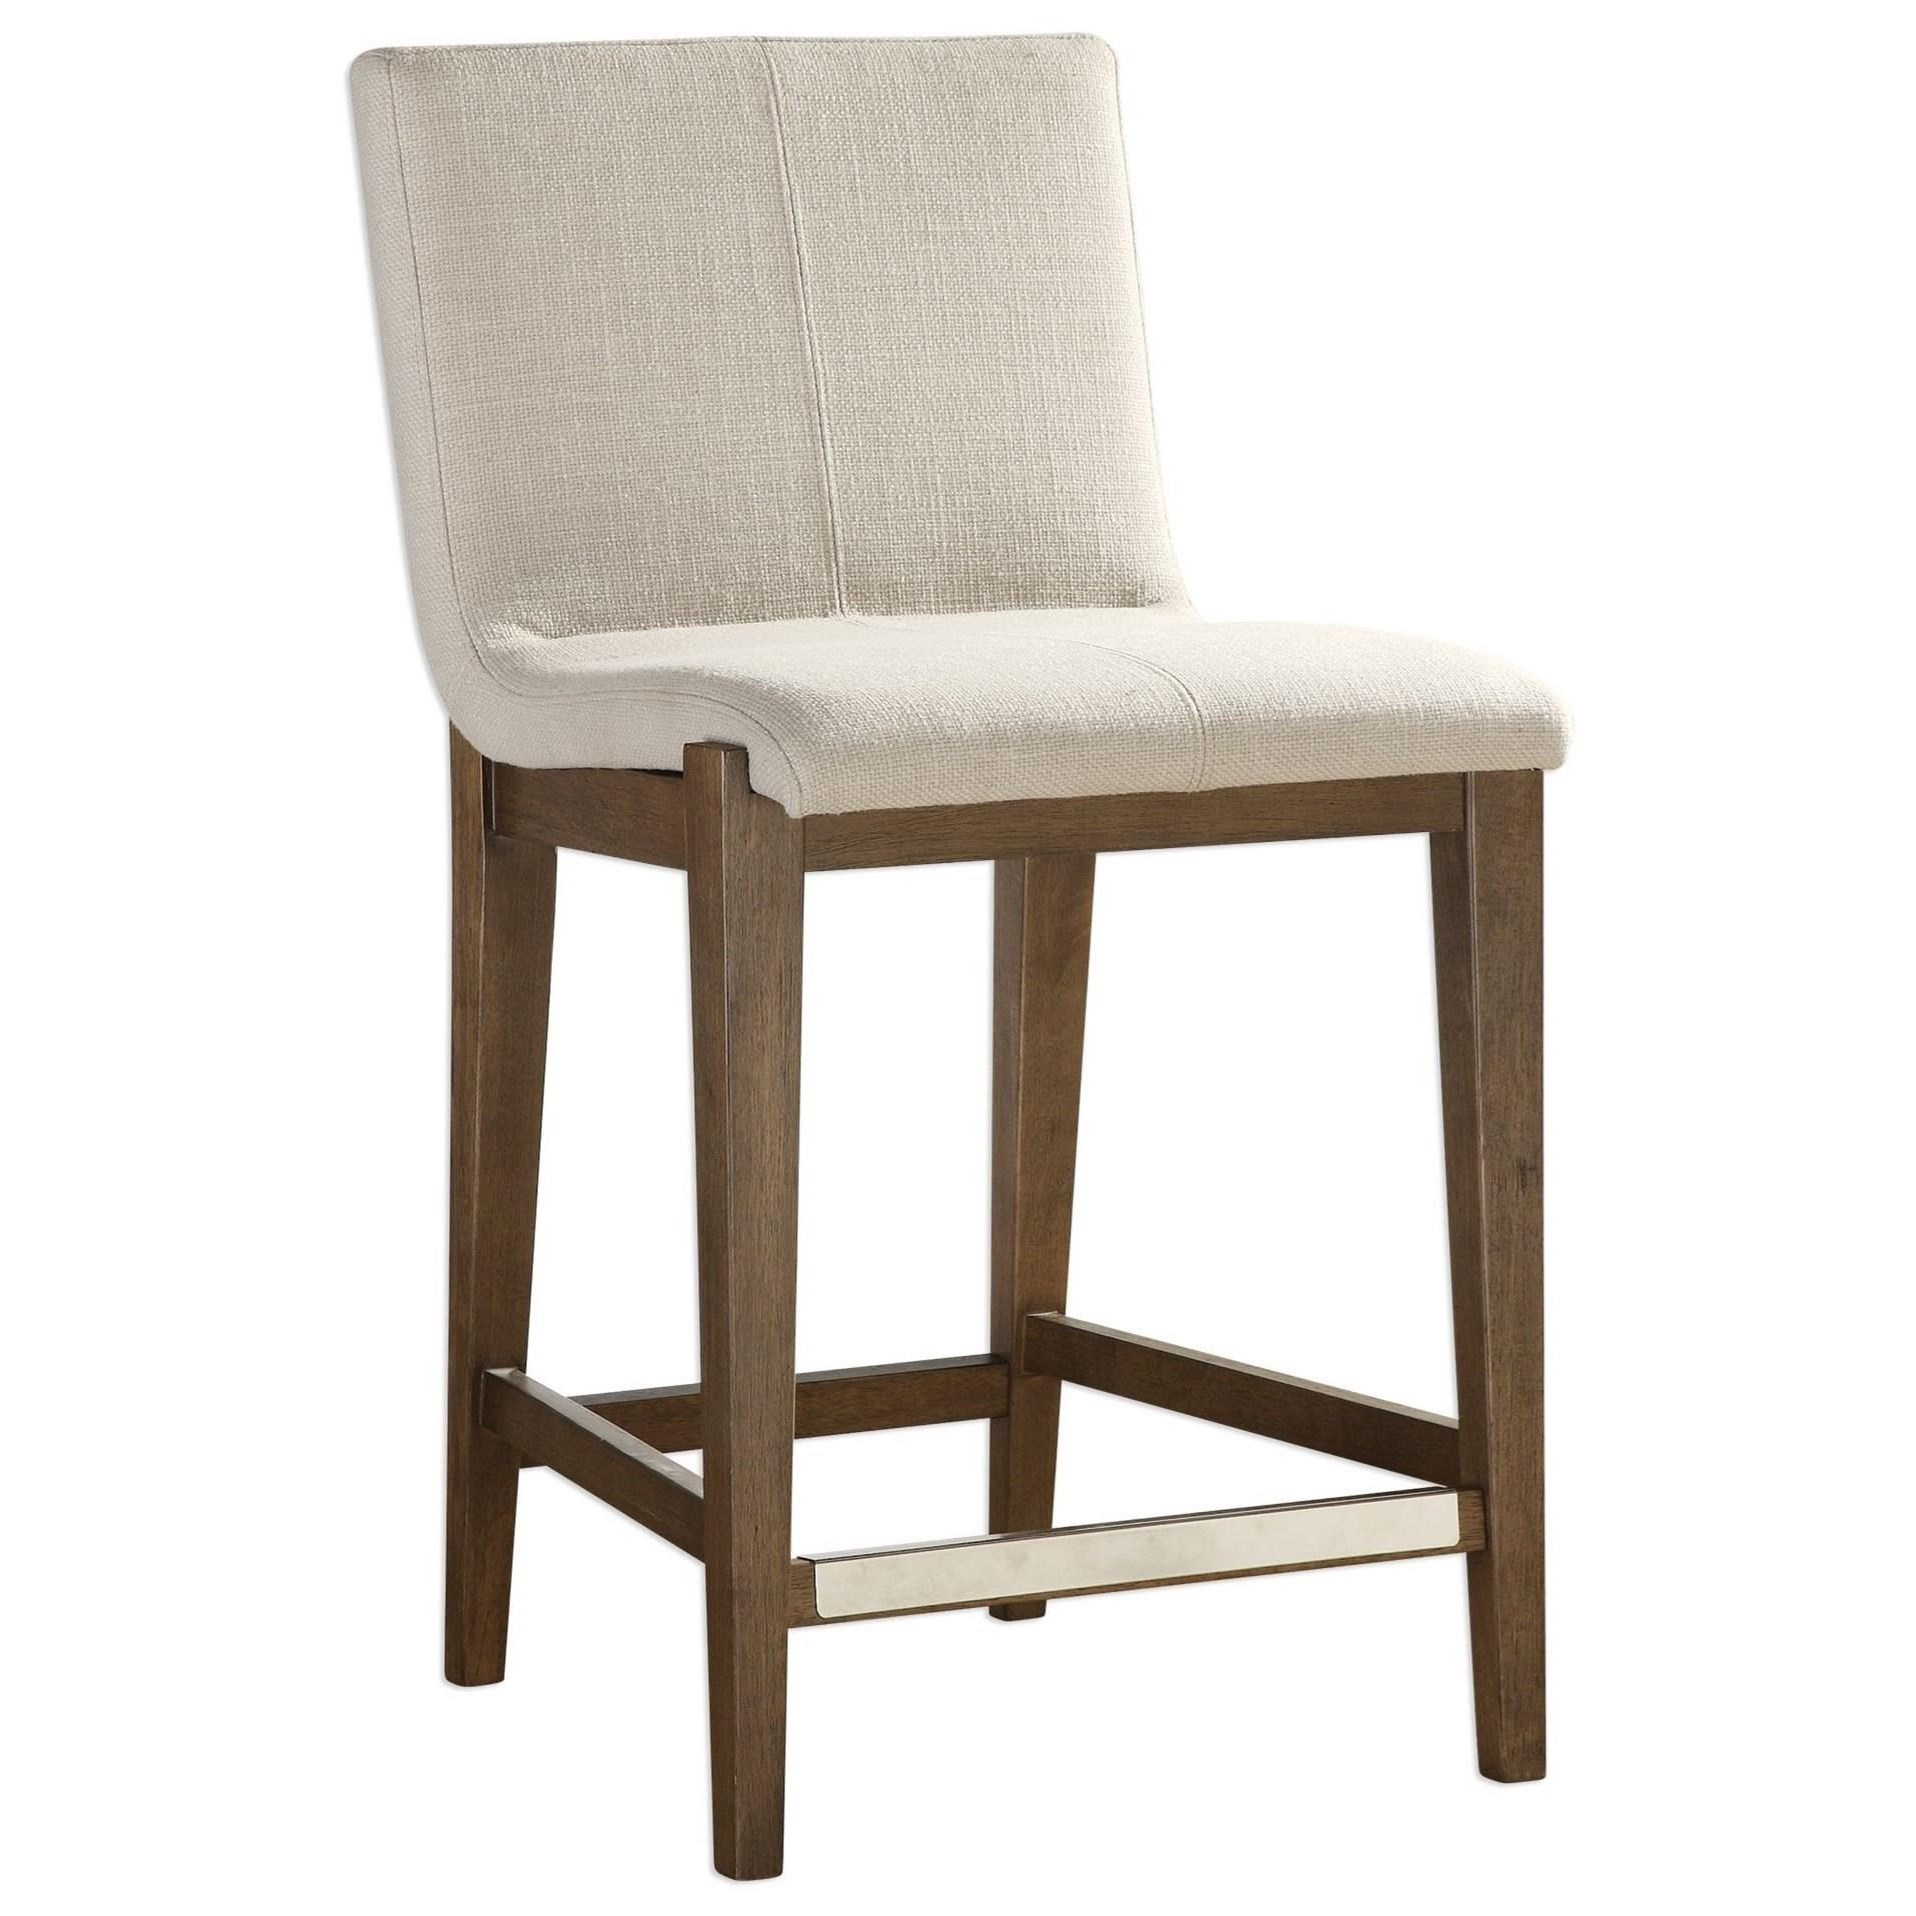 Accent Furniture - Stools Klemens Linen Counter Stool by Uttermost at Mueller Furniture